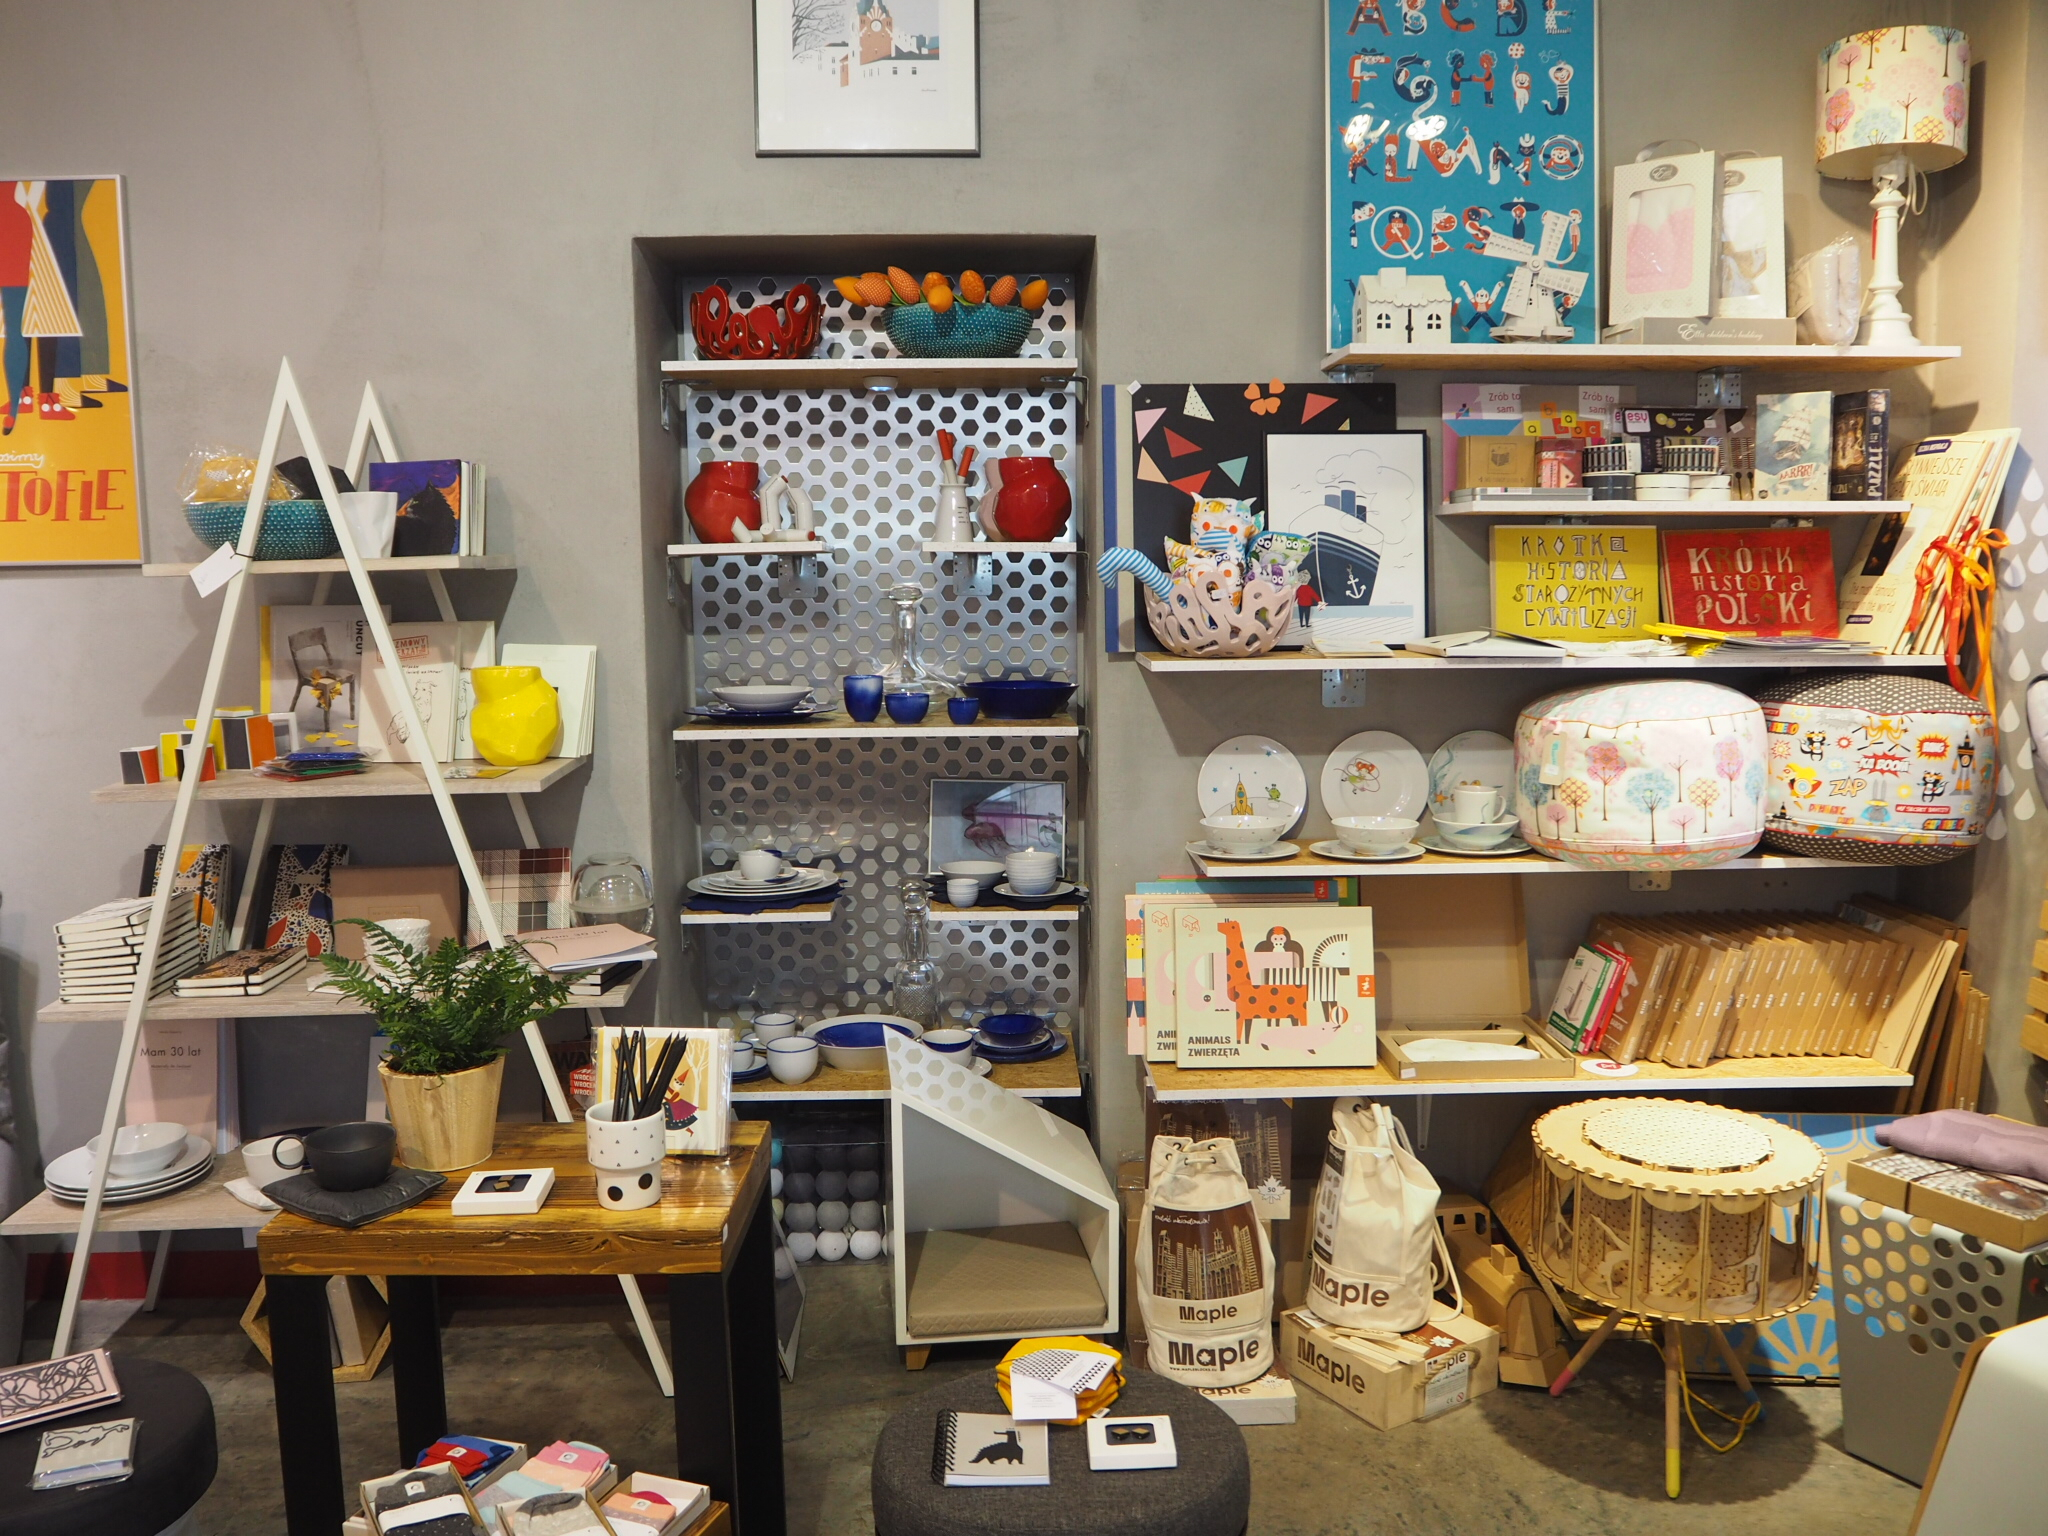 Marka Concept store in Krakow, Poland. Selling quirky homeware by Polish designers.